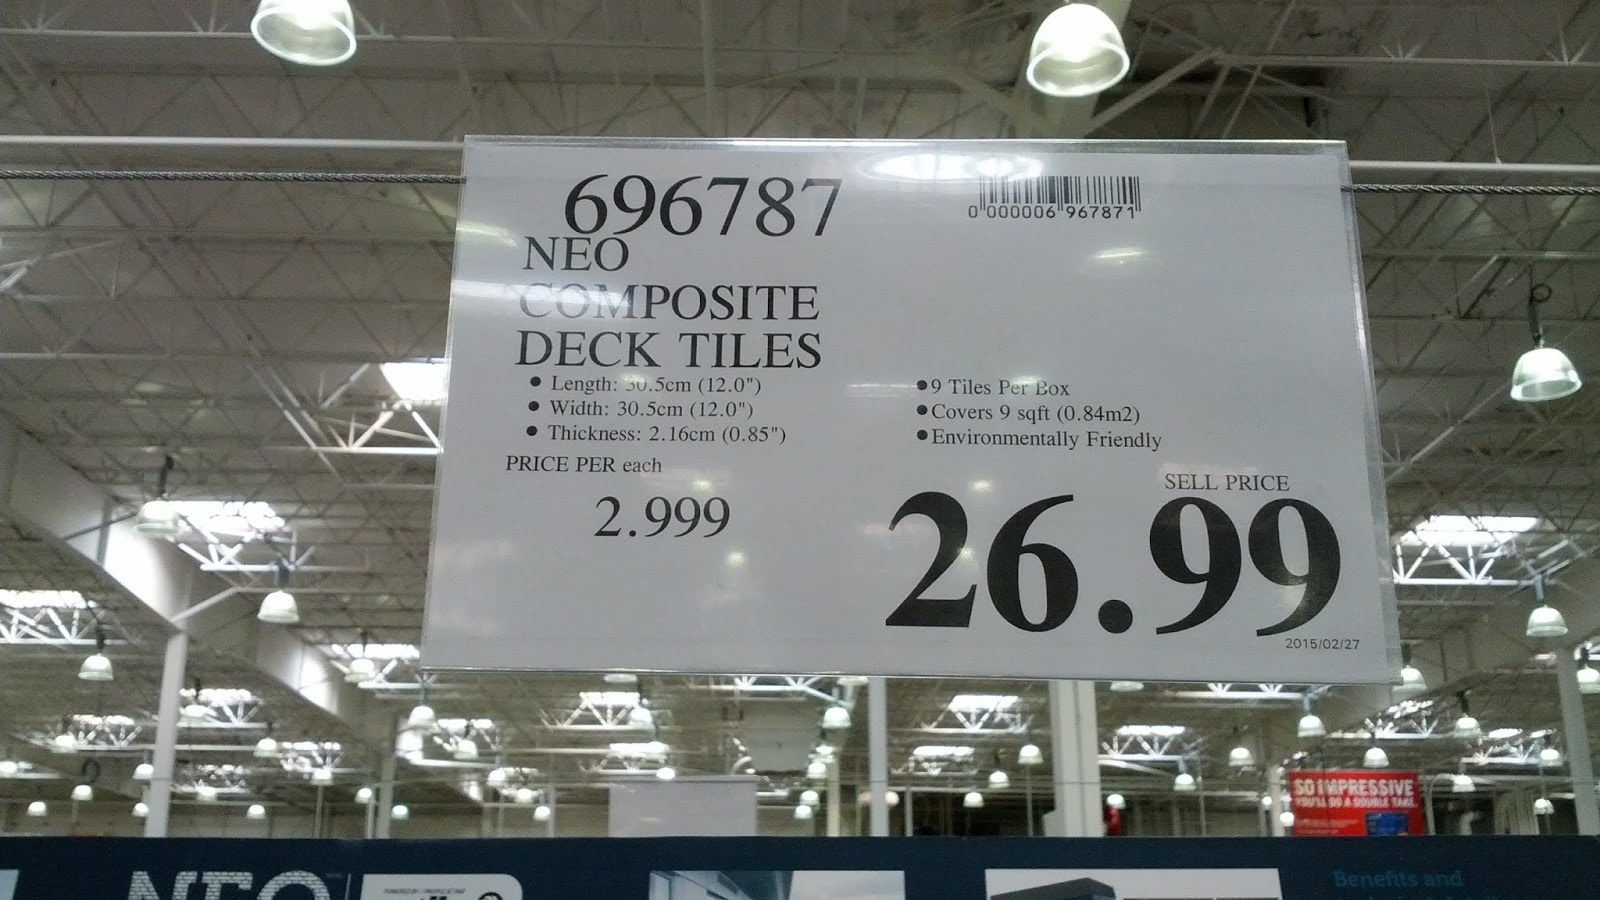 Deal For Neo Composite Deck Tiles At Costco